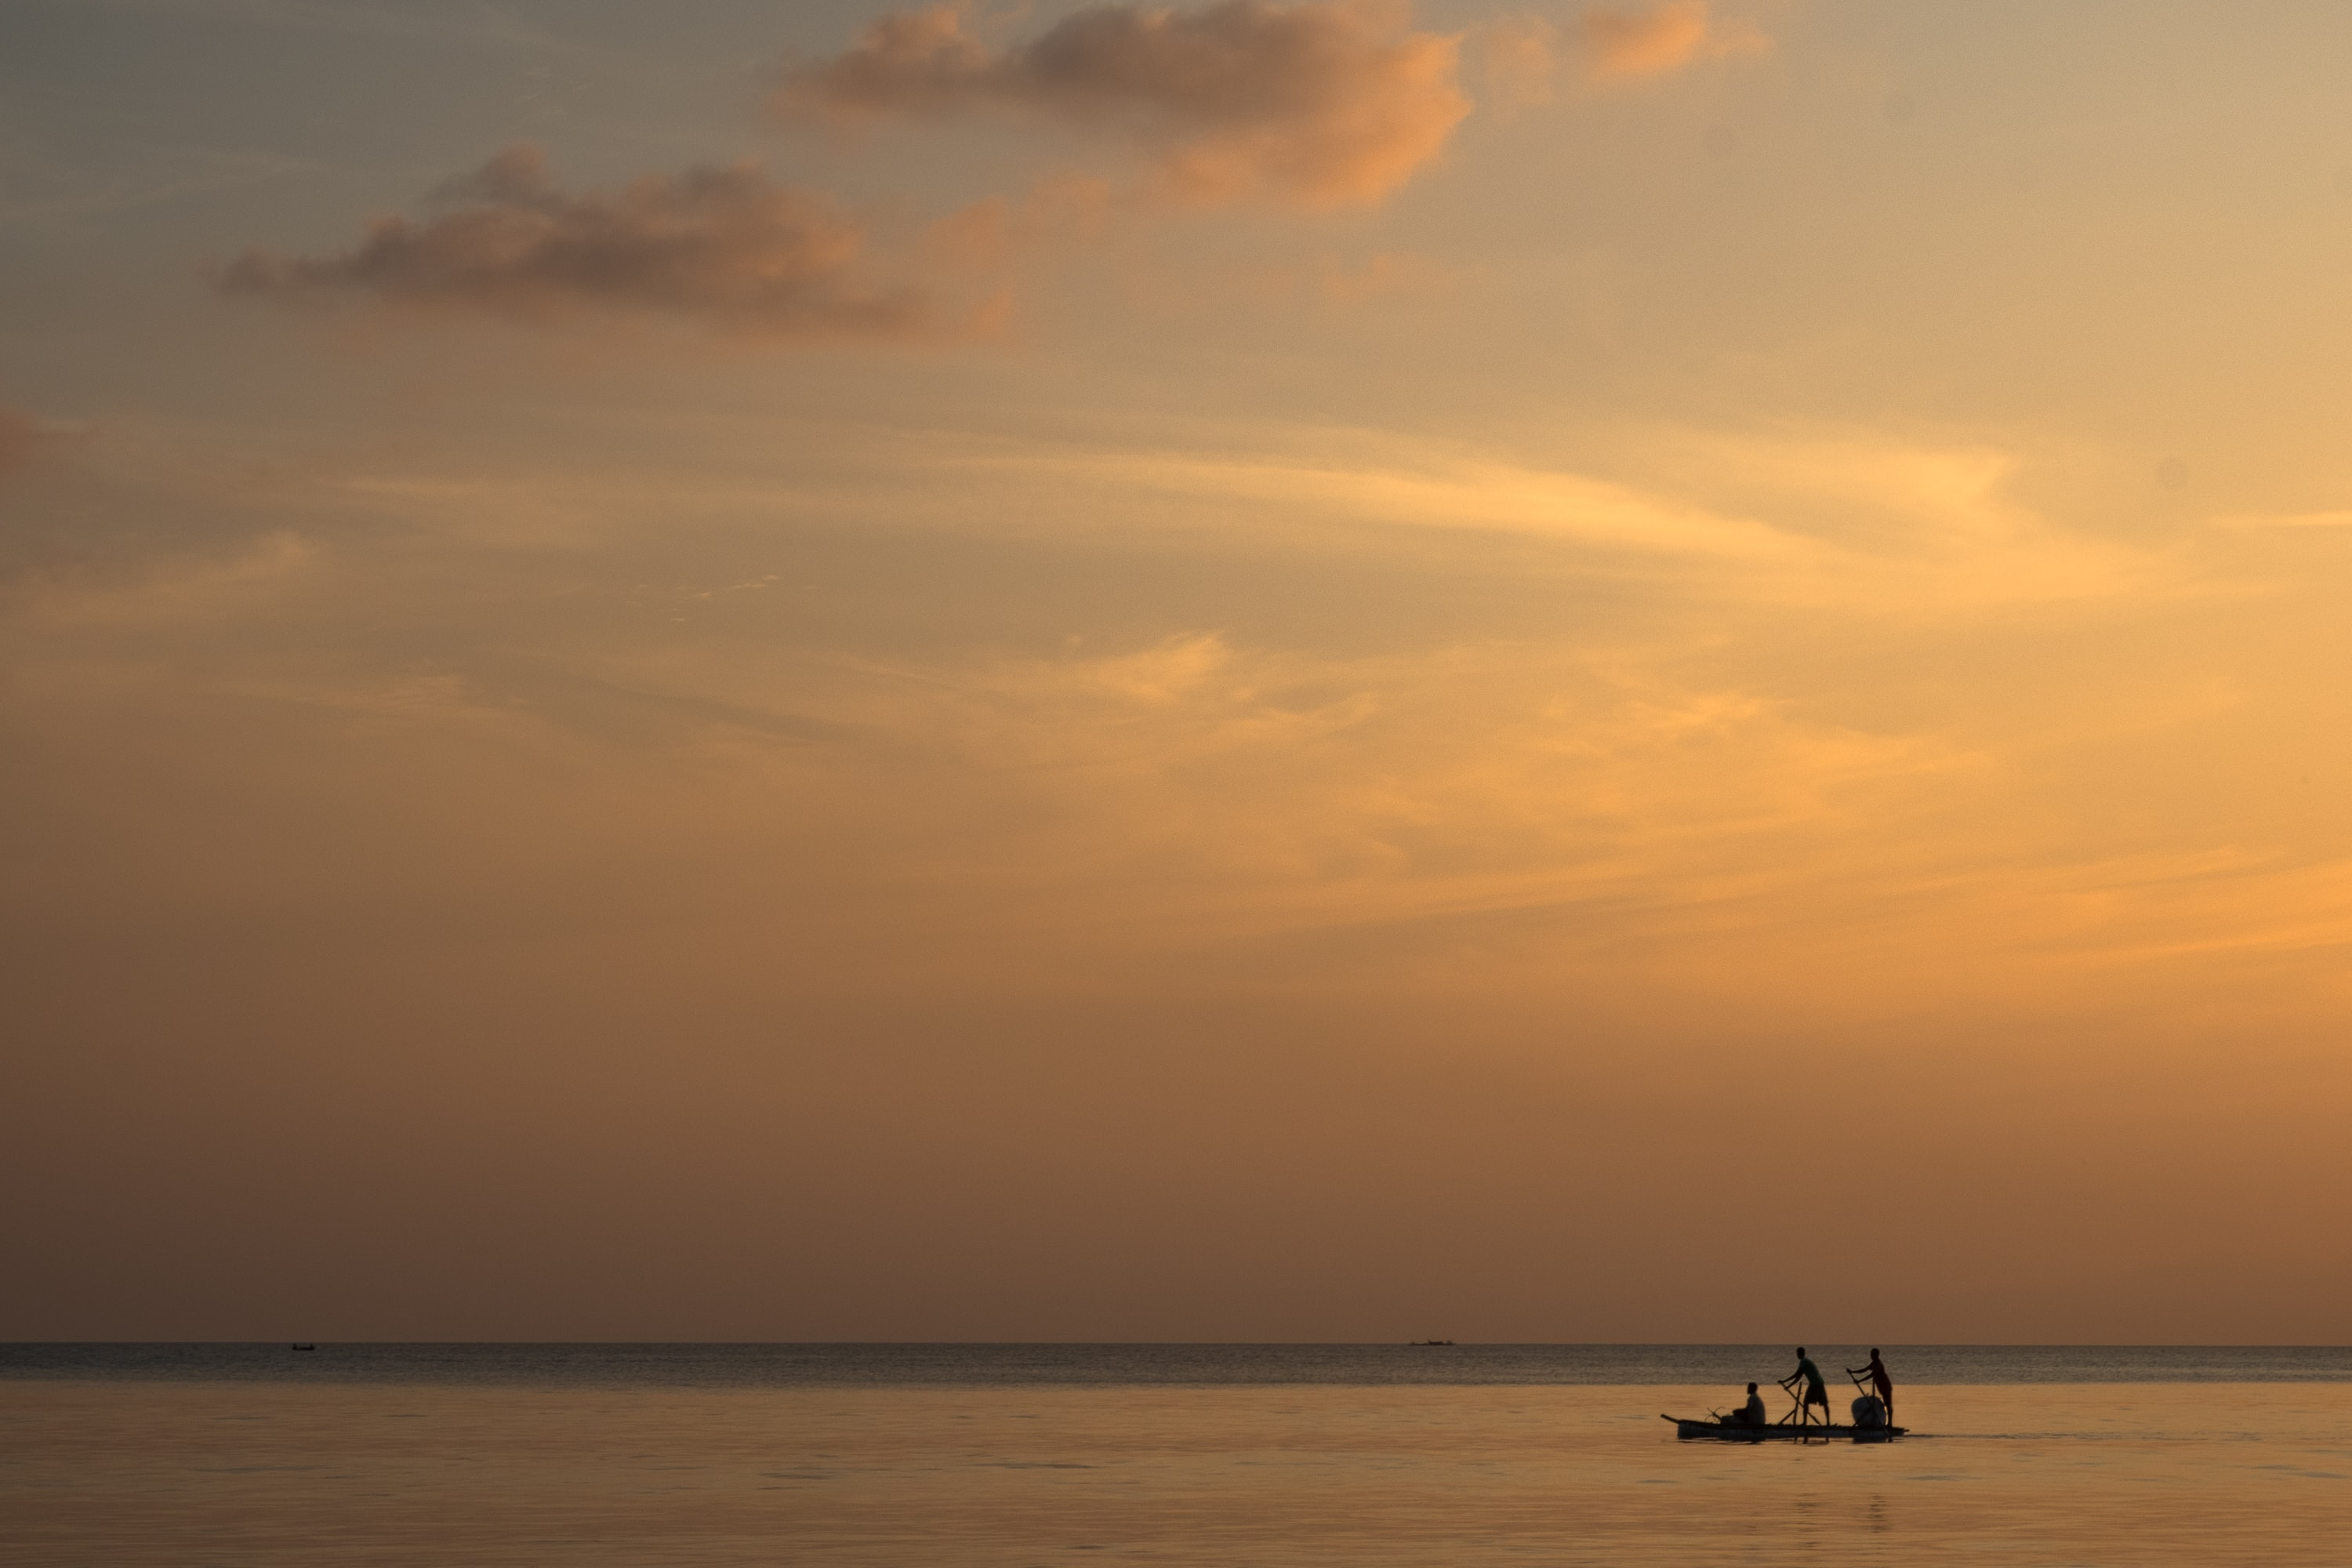 silhouette of people on boat